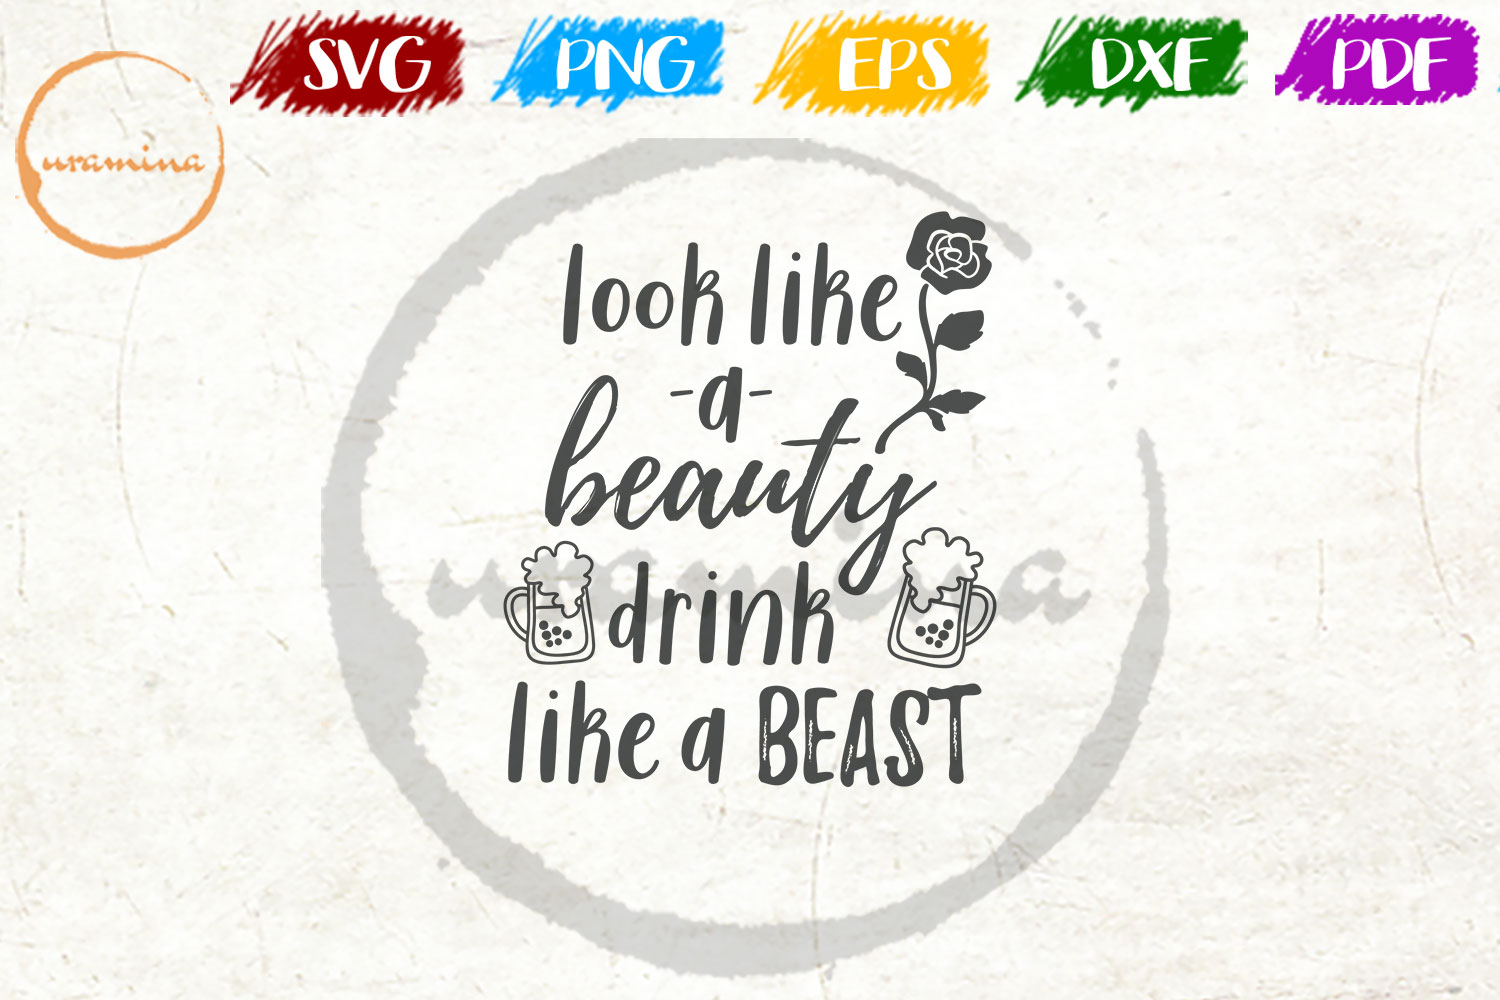 Download Free Look Like A Beauty Drink Like A Beast Graphic By Uramina for Cricut Explore, Silhouette and other cutting machines.